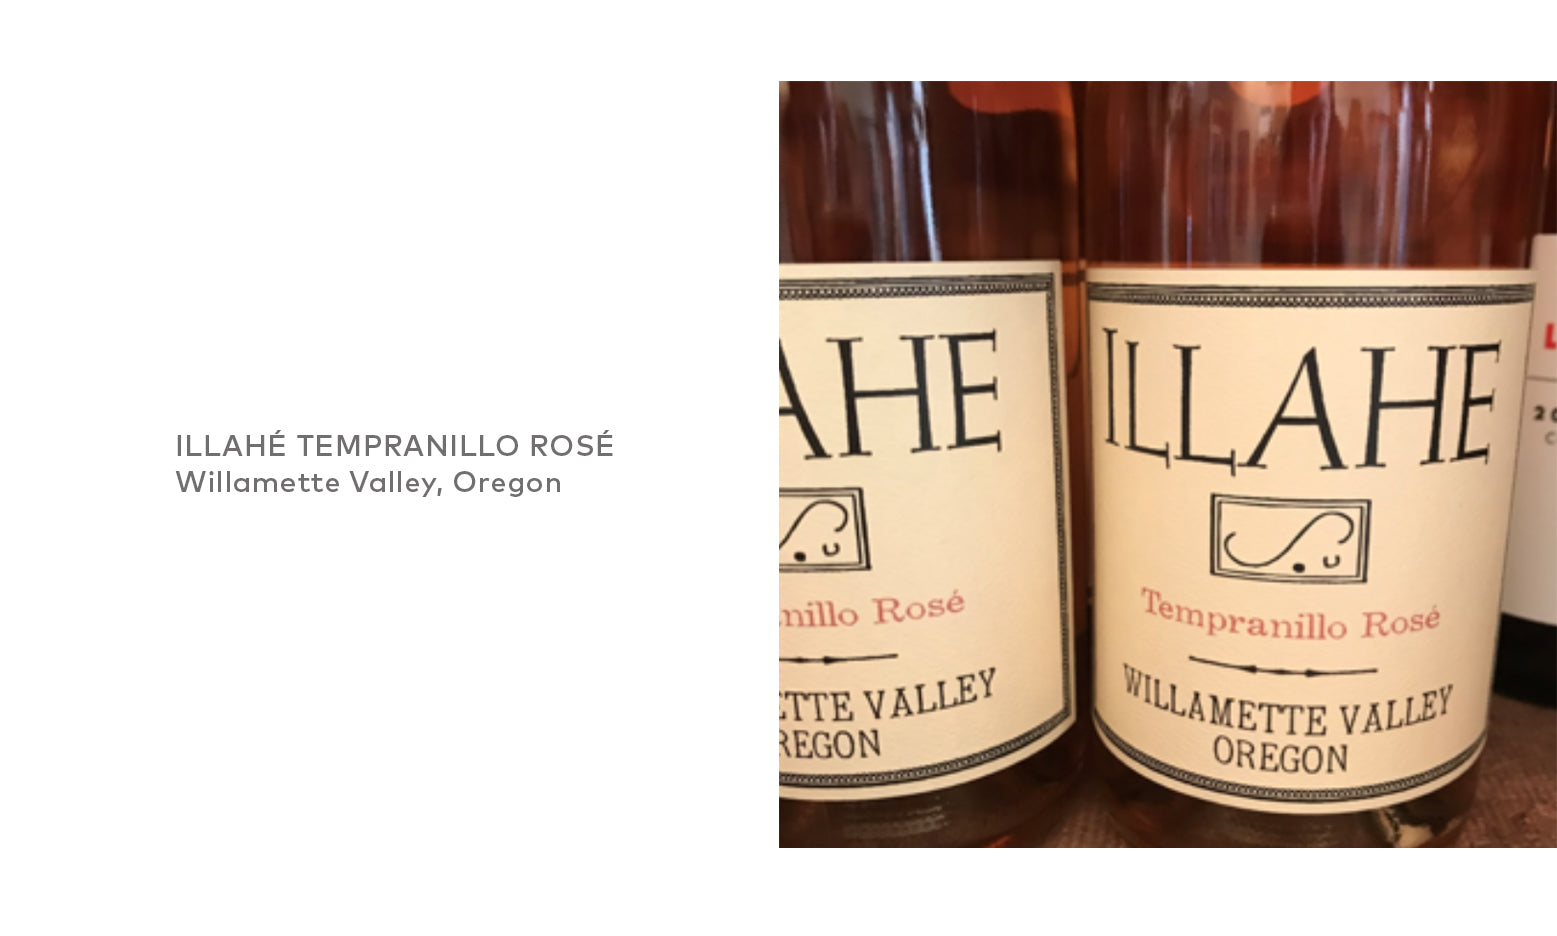 Illahé Tempranillo Rosé from Willamette Valley, Oregon.